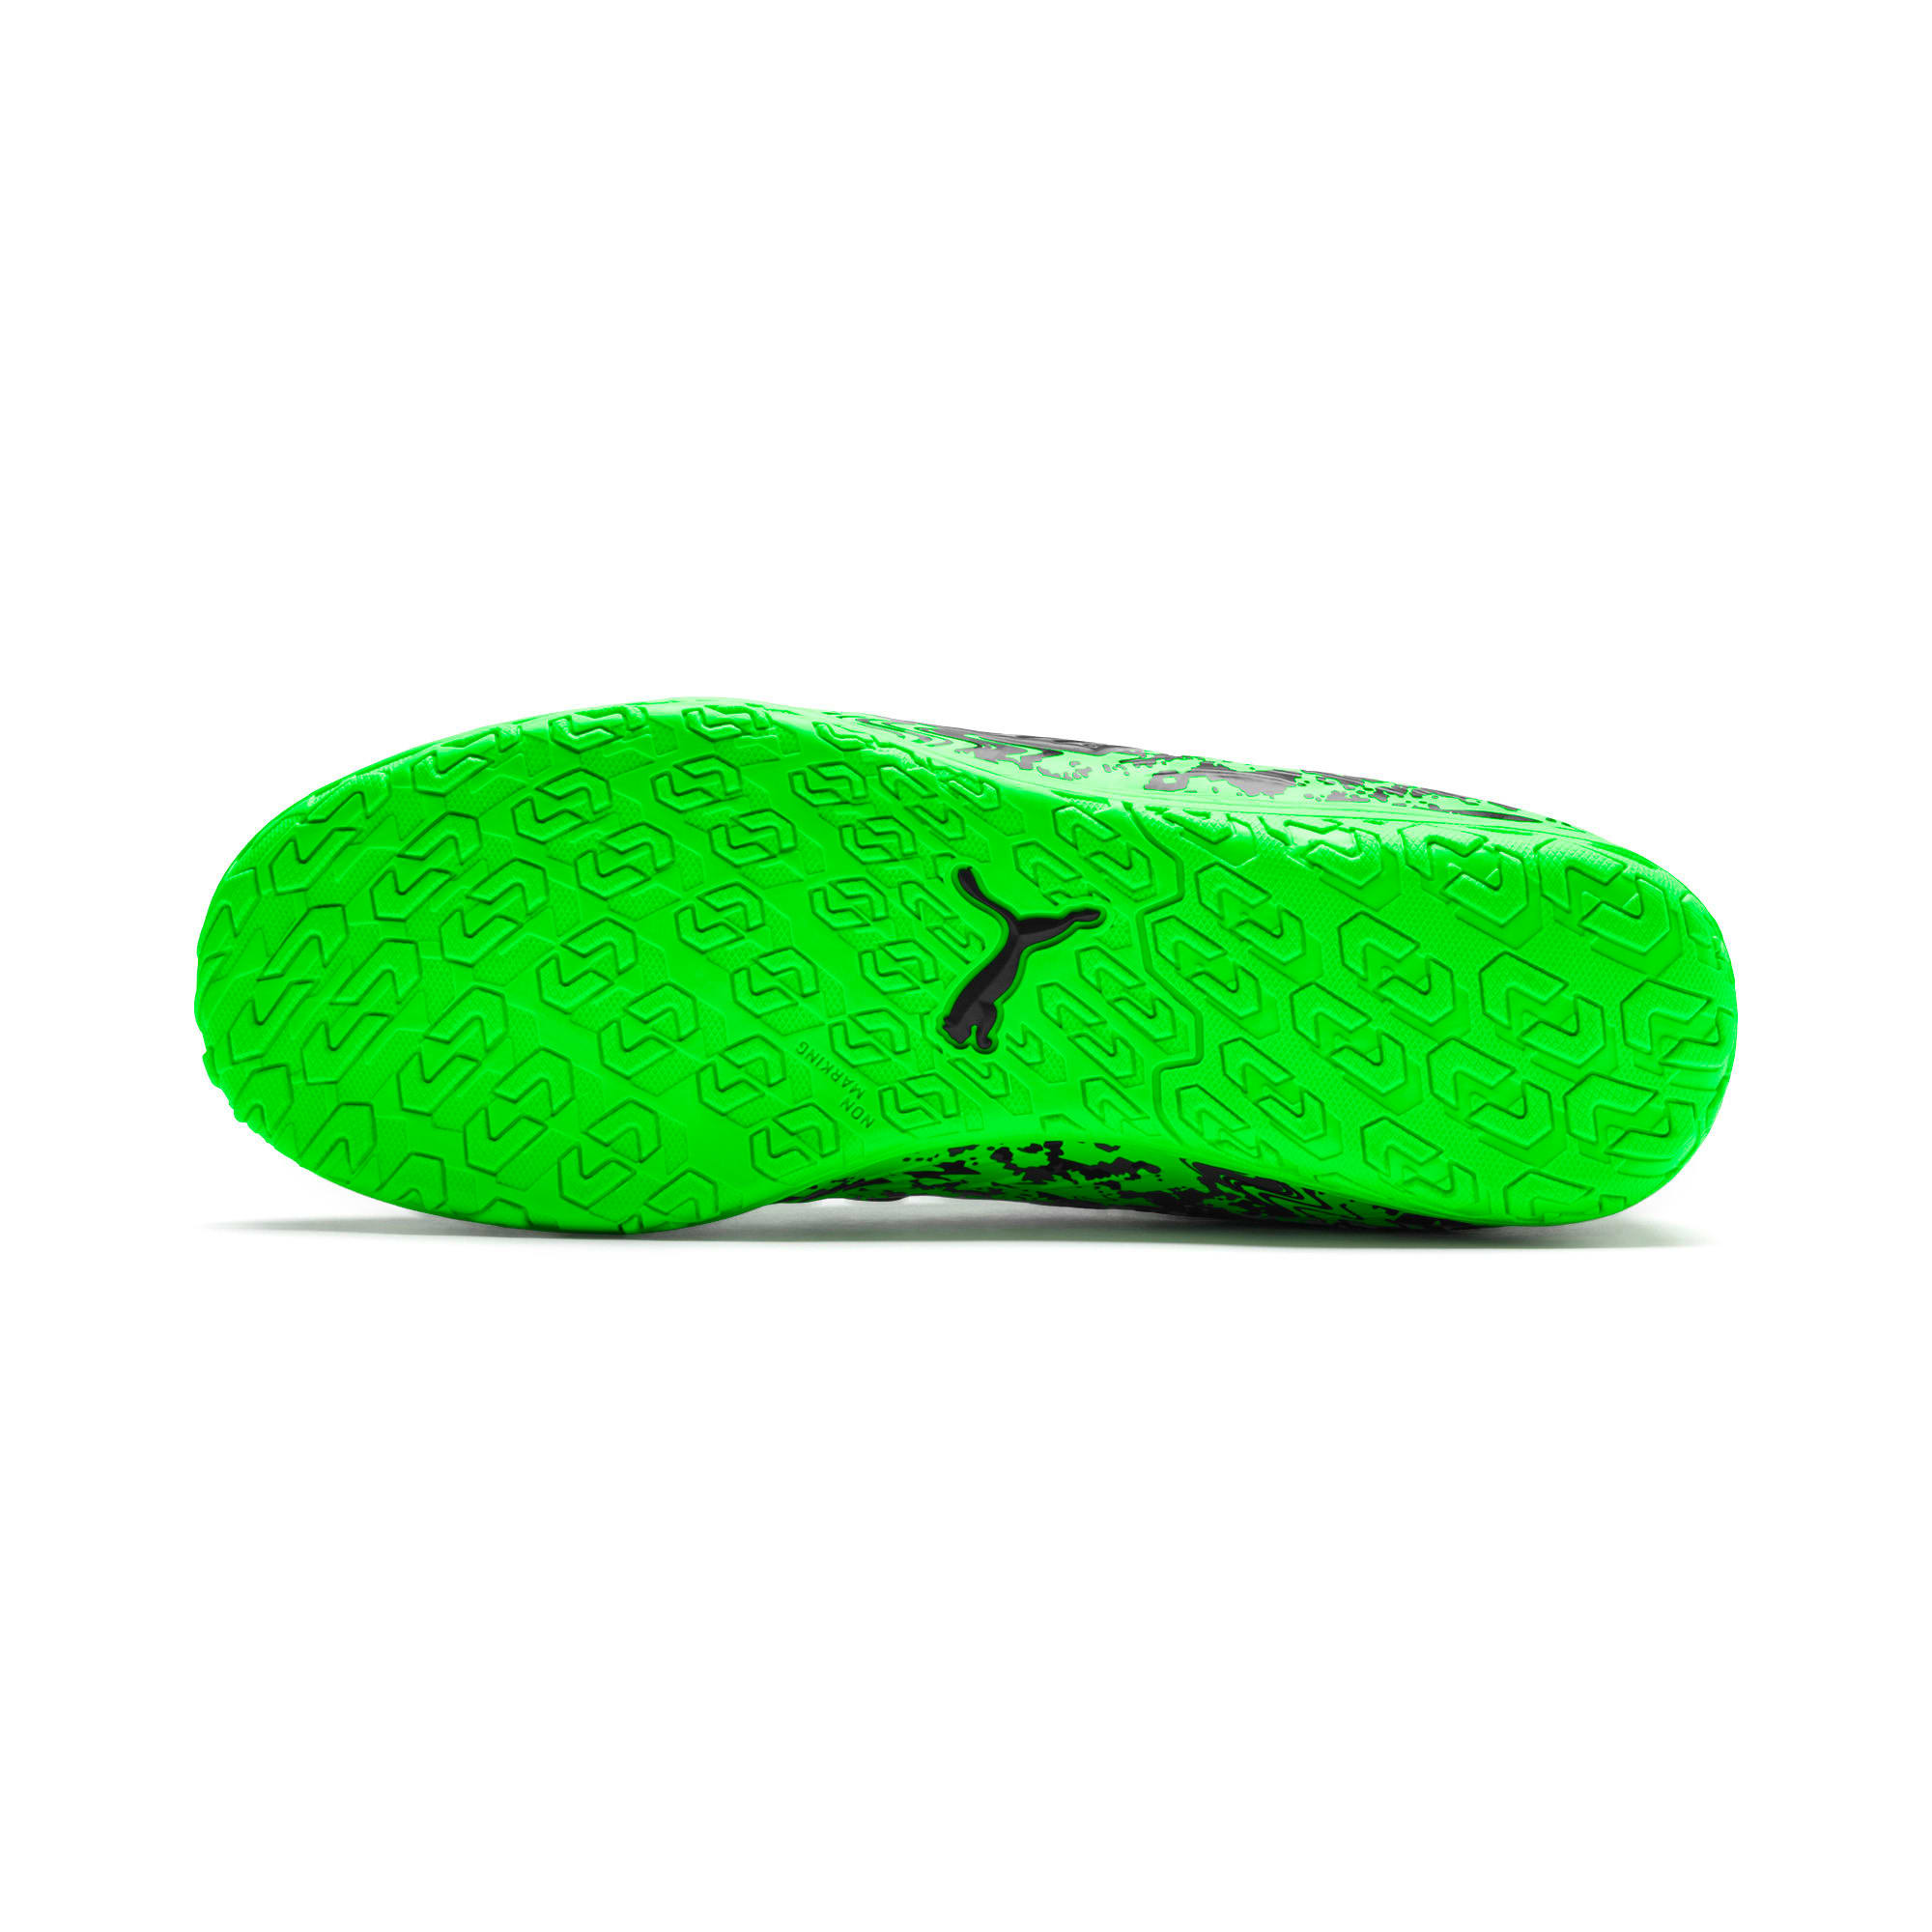 Thumbnail 4 of PUMA ONE 19.4 IT Soccer Shoes JR, Green Gecko-Black-Gray, medium